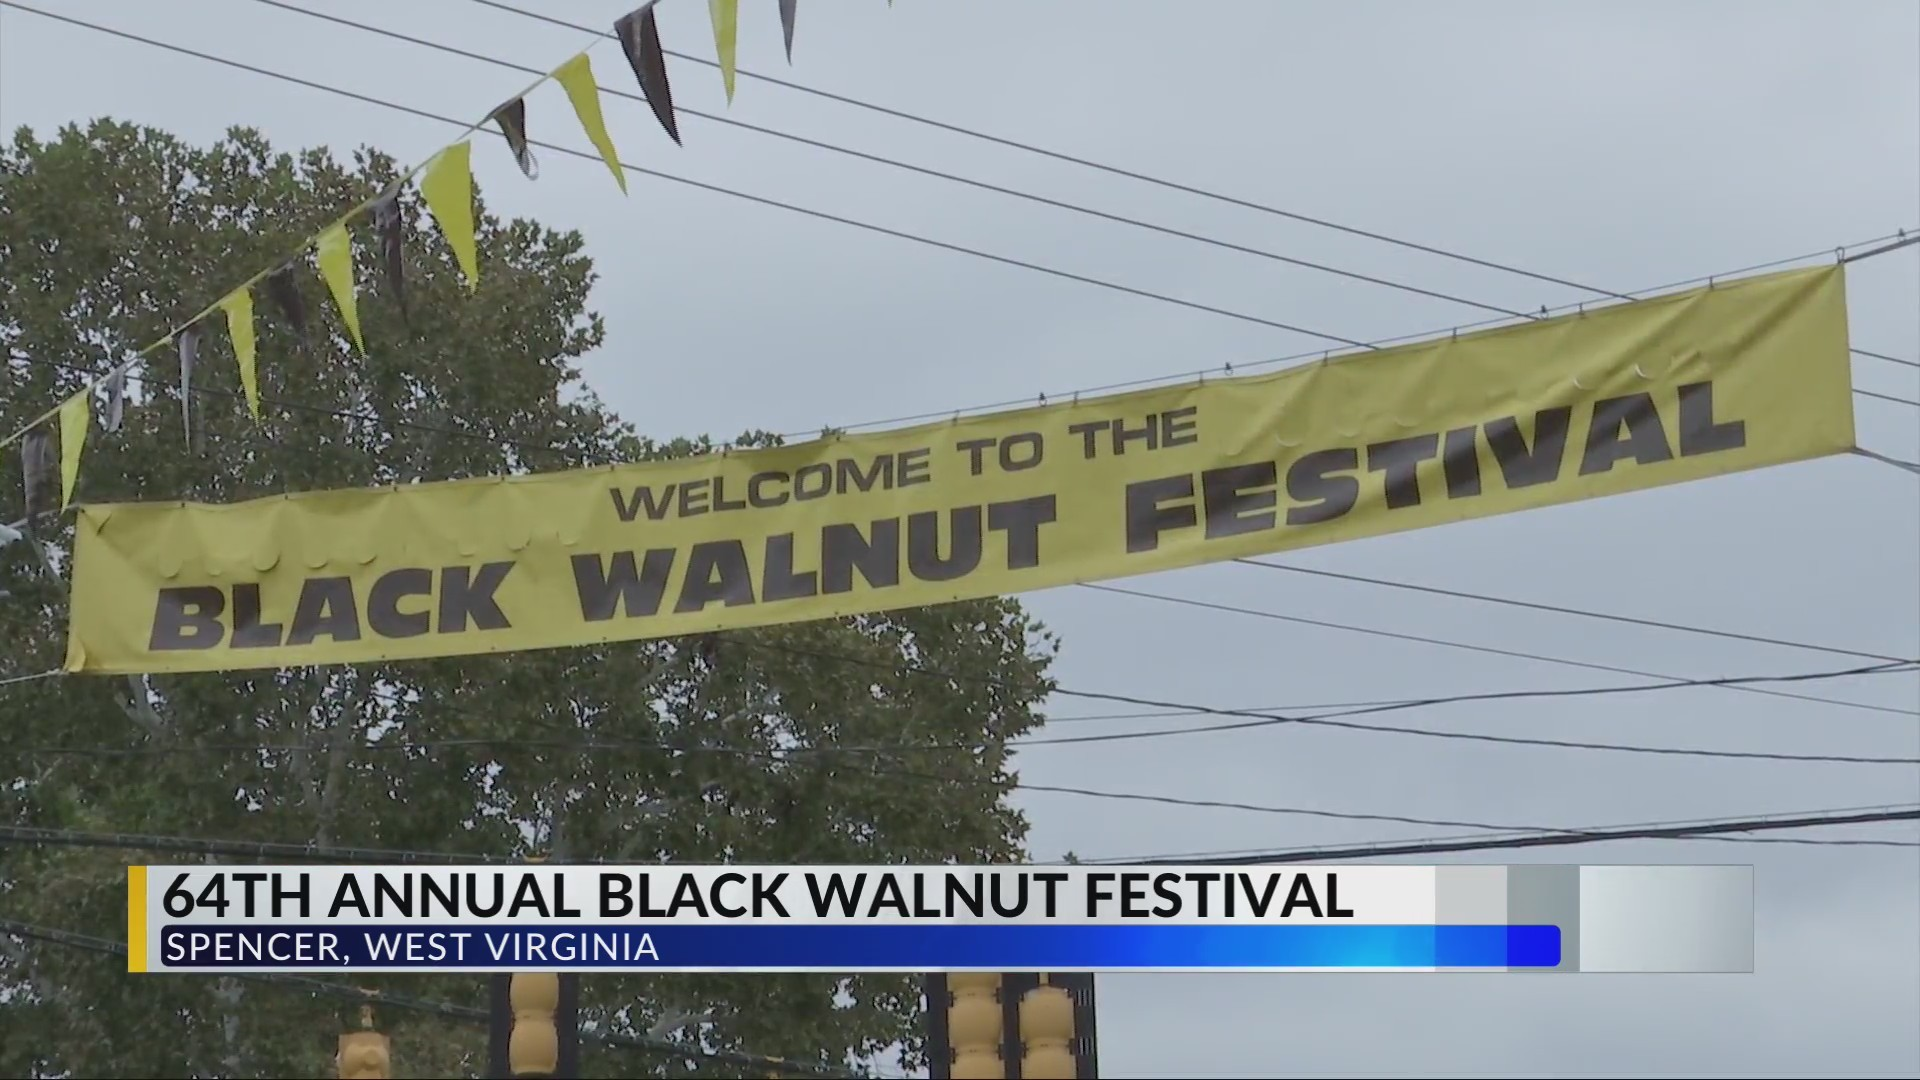 In a nutshell: Annual Black Walnut Festival doesn't disappoint